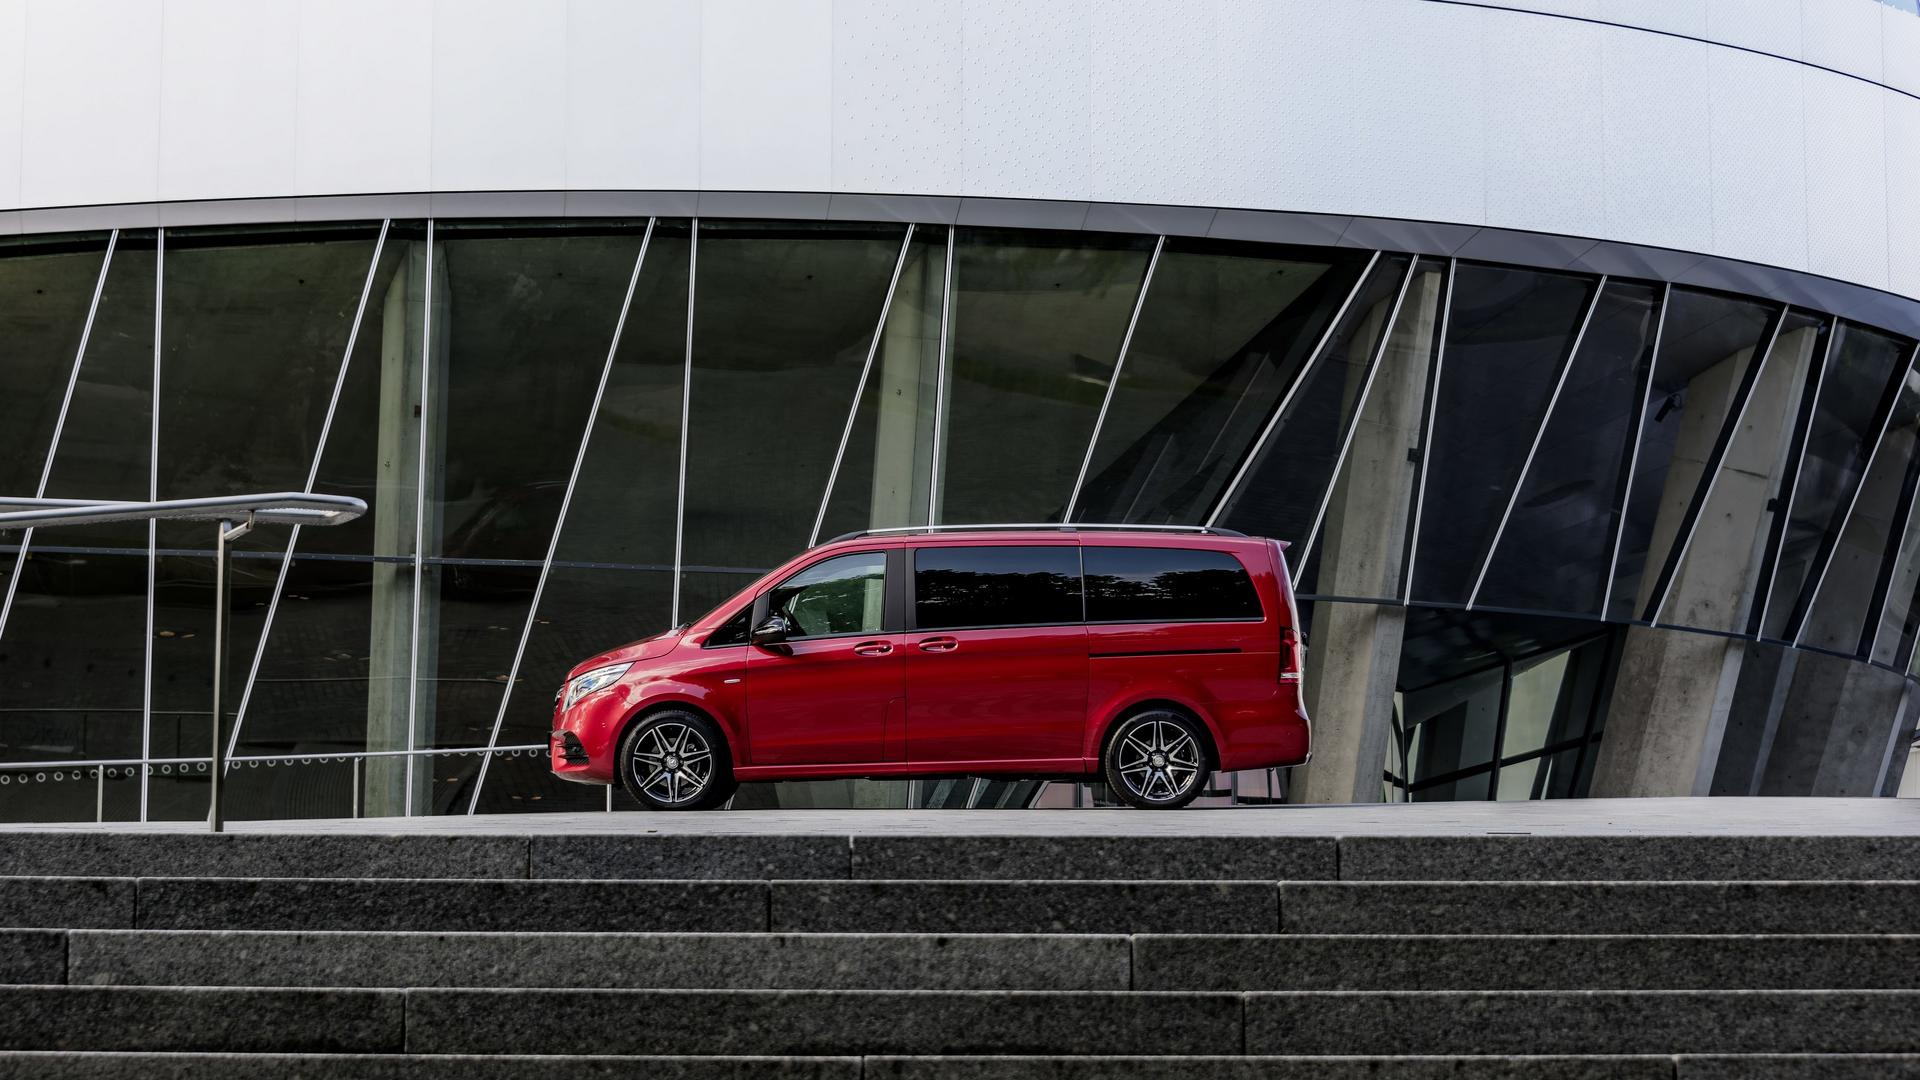 mercedes v class limited and rise editions spice up the posh mpv https www motor1 com news 178079 mercedes v class limited edition